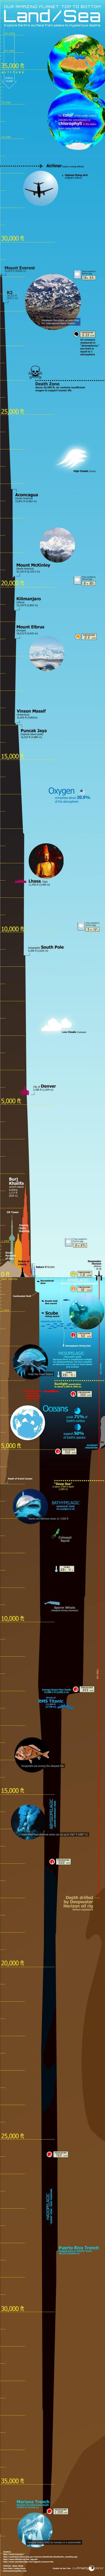 From the tallest mountain to the deepest ocean trench infographic